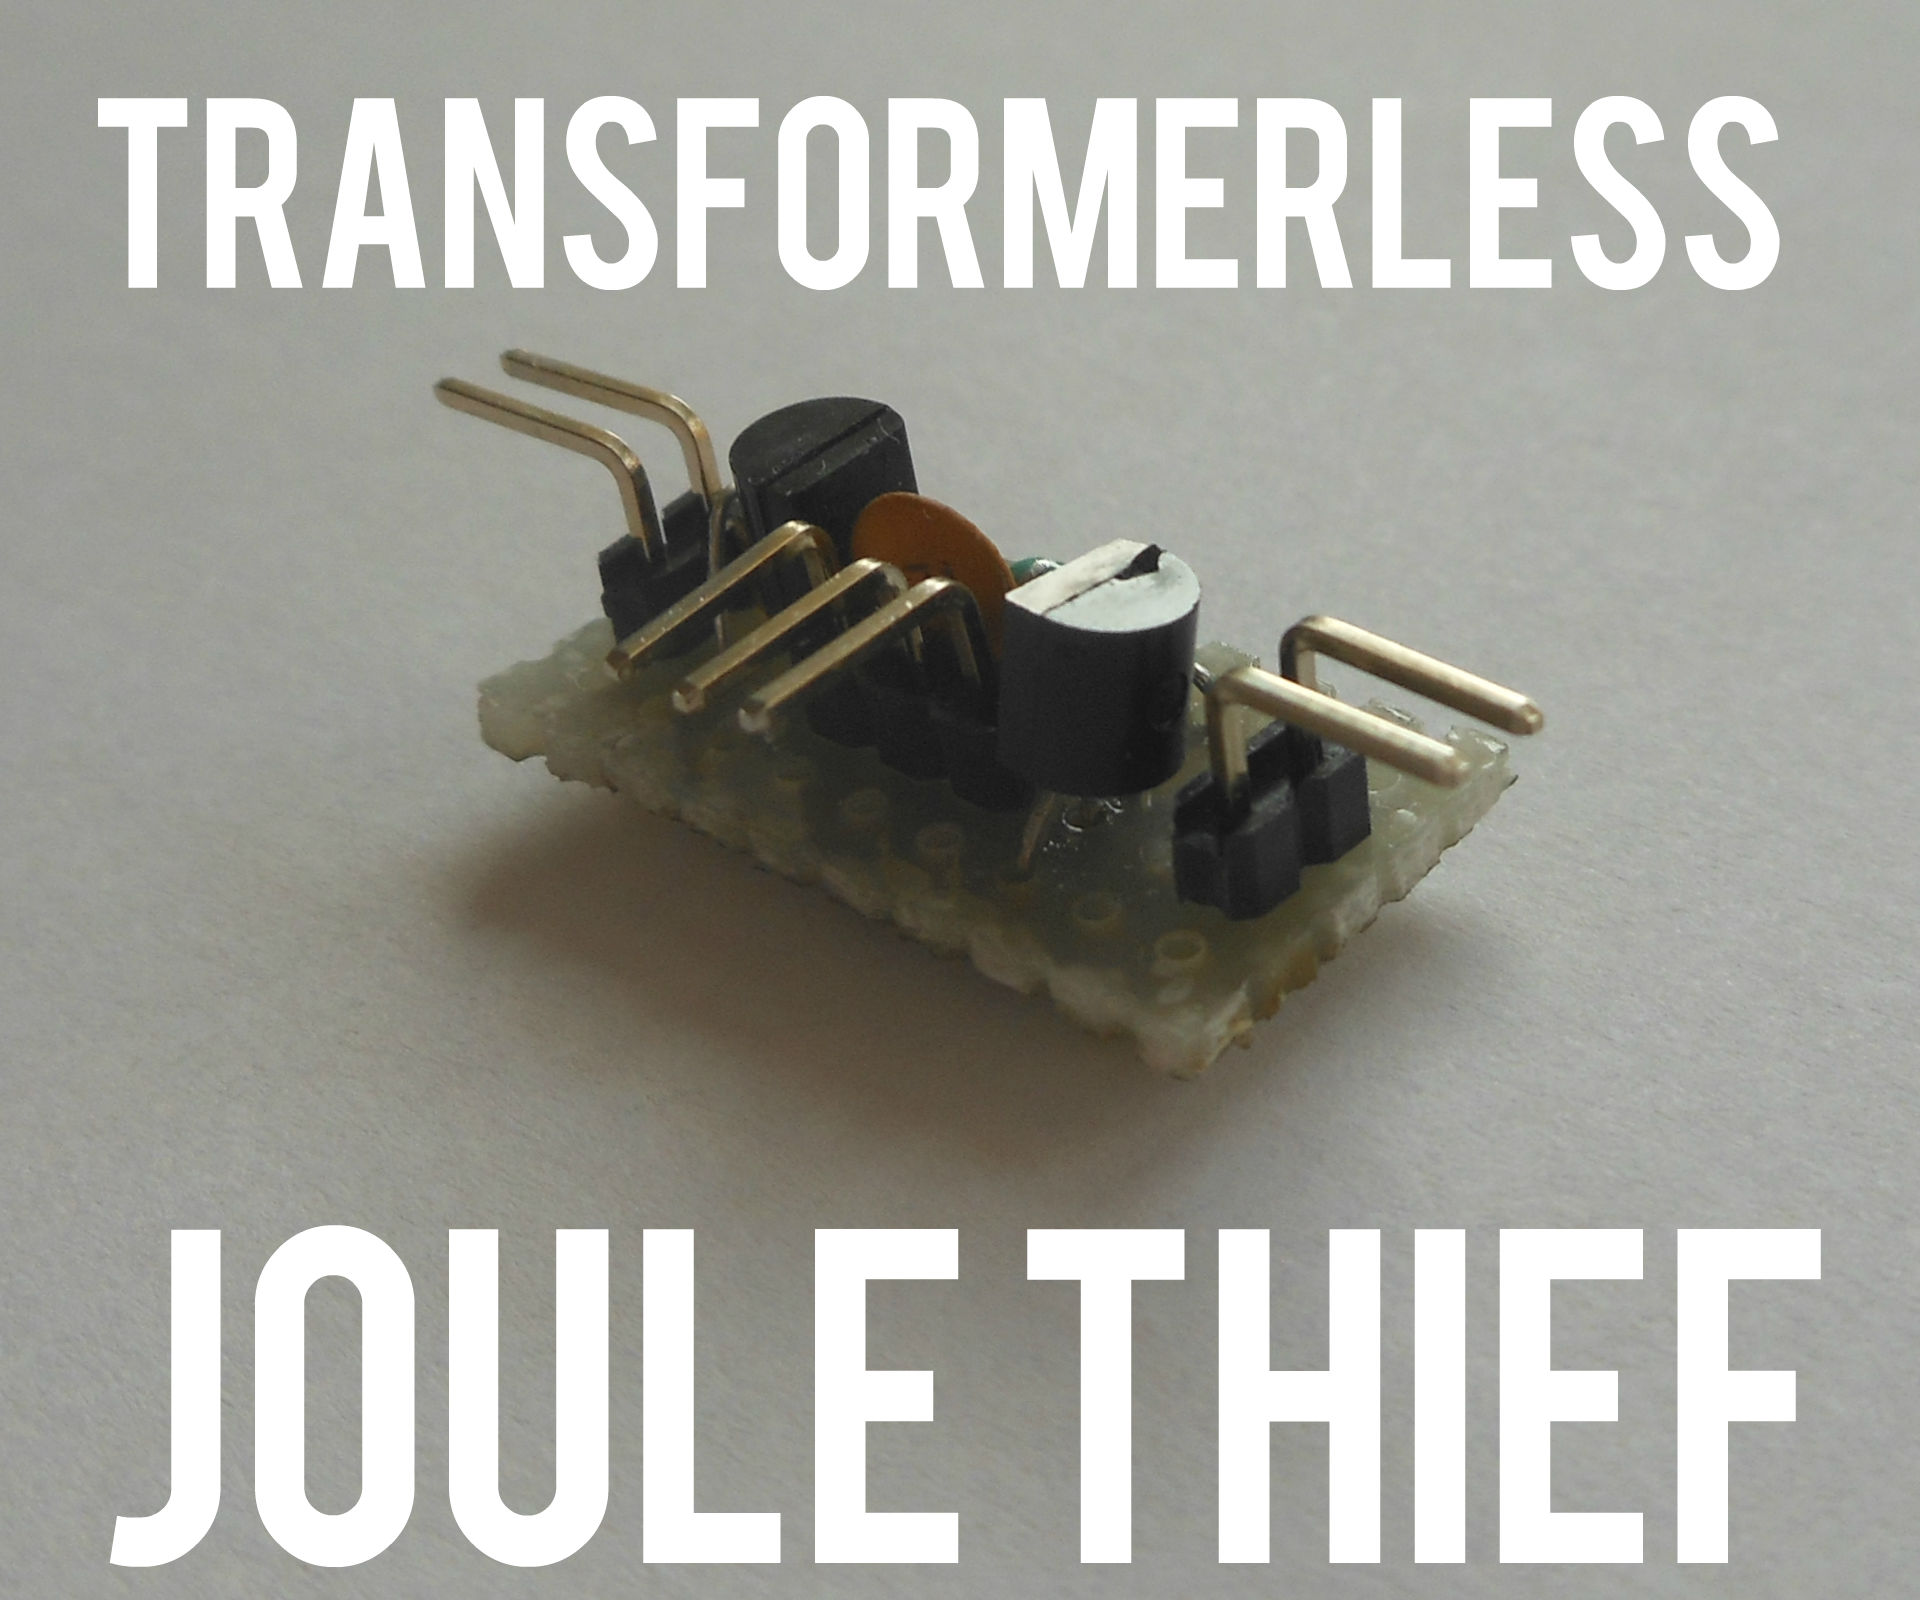 Transformerless Adjustable Joule Thief